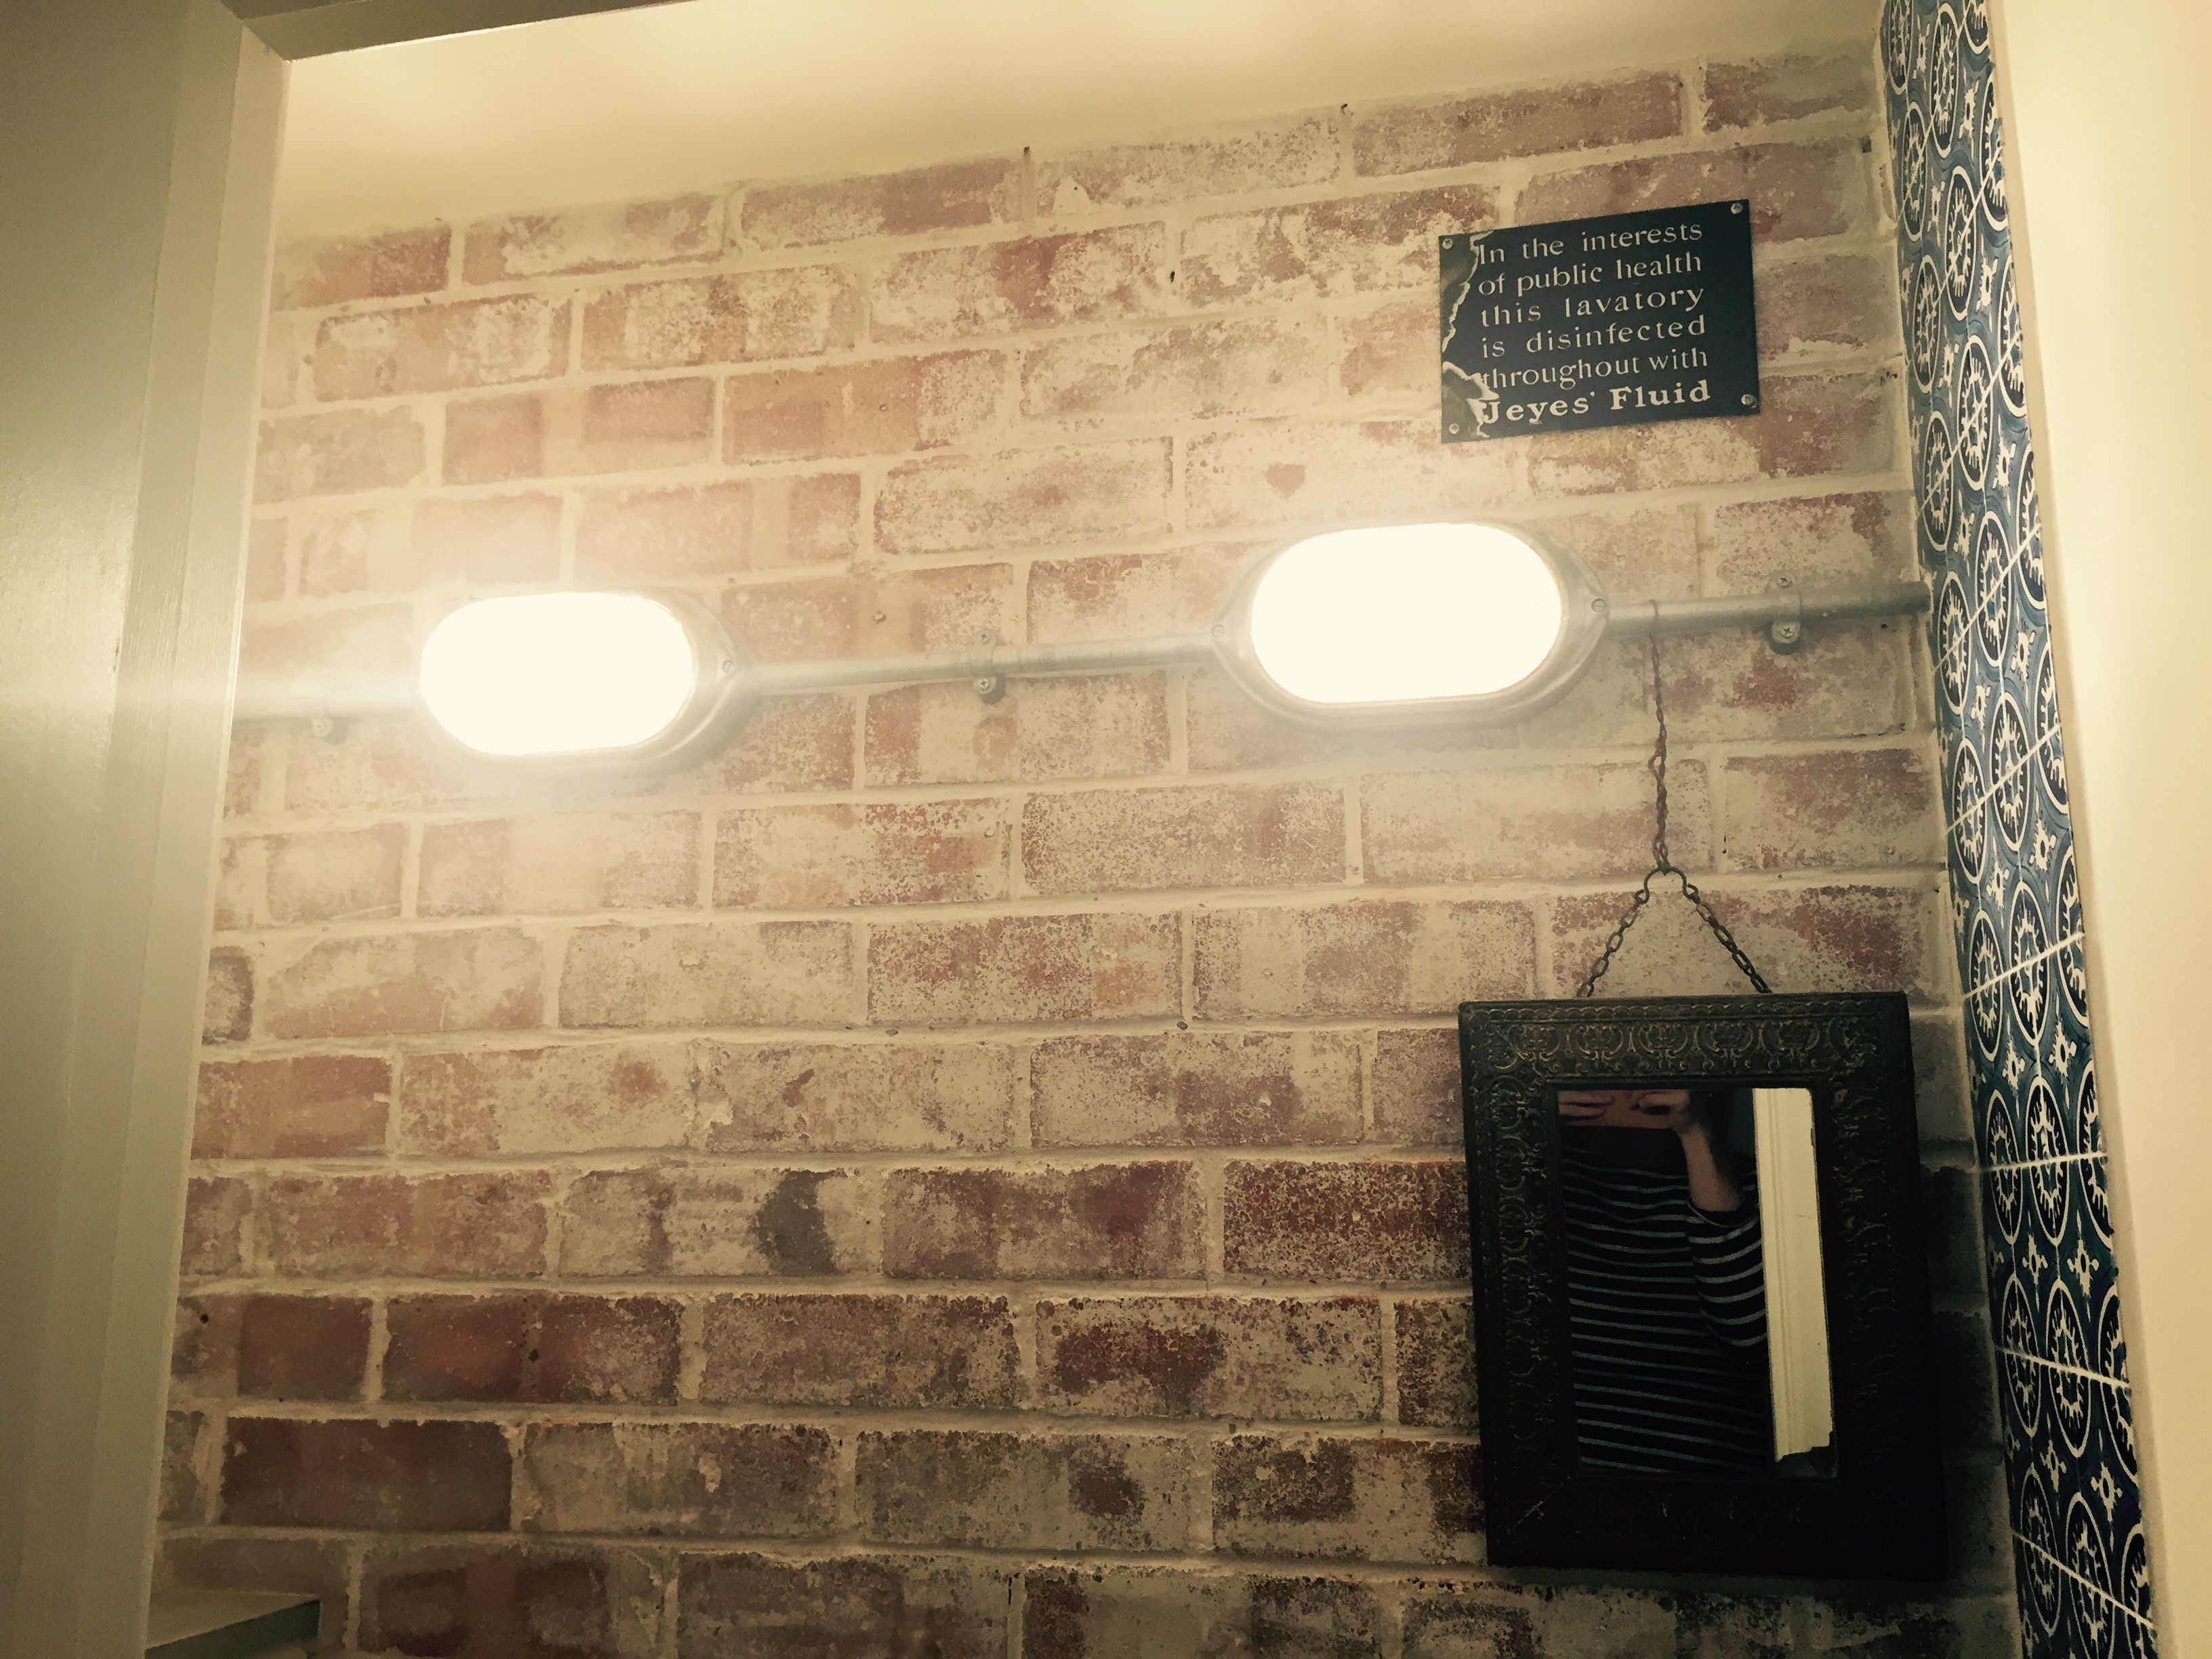 whitewashed exposed brick wall galvanised conduit lighting coughtrie all the wiring is in galvanised steel conduit the exposed bricks will [ 3264 x 2448 Pixel ]